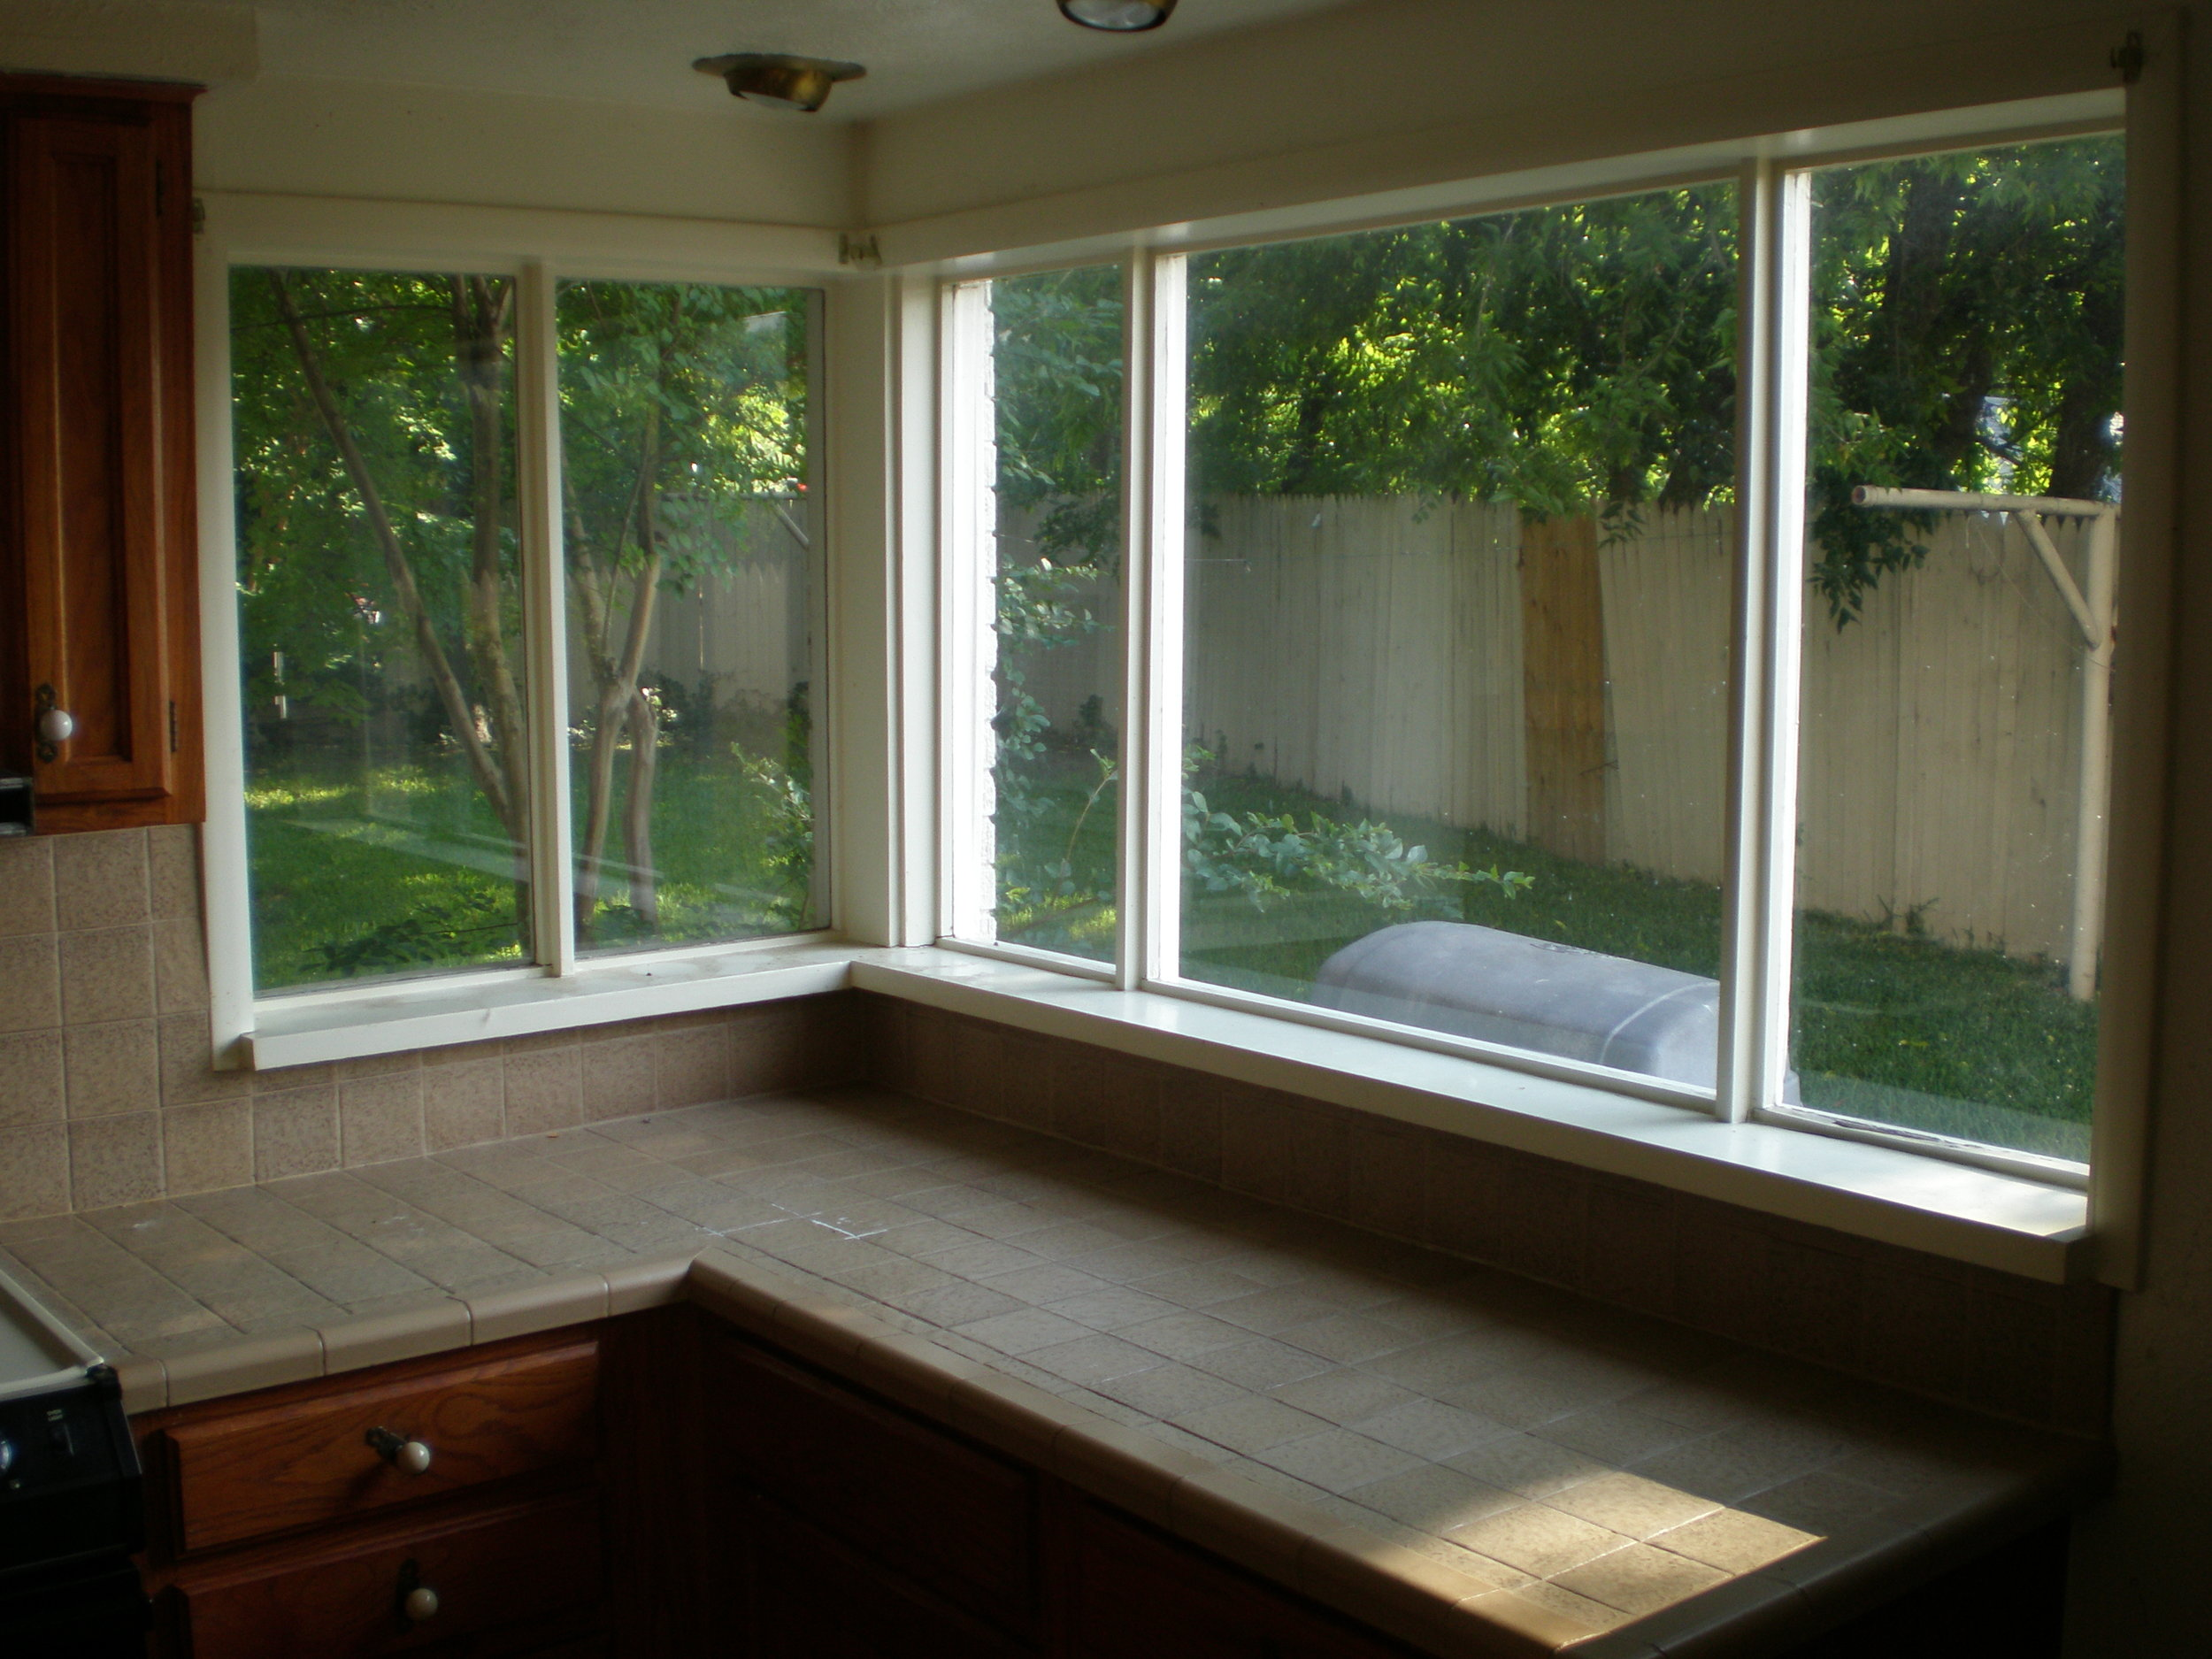 815 kitchen window.JPG